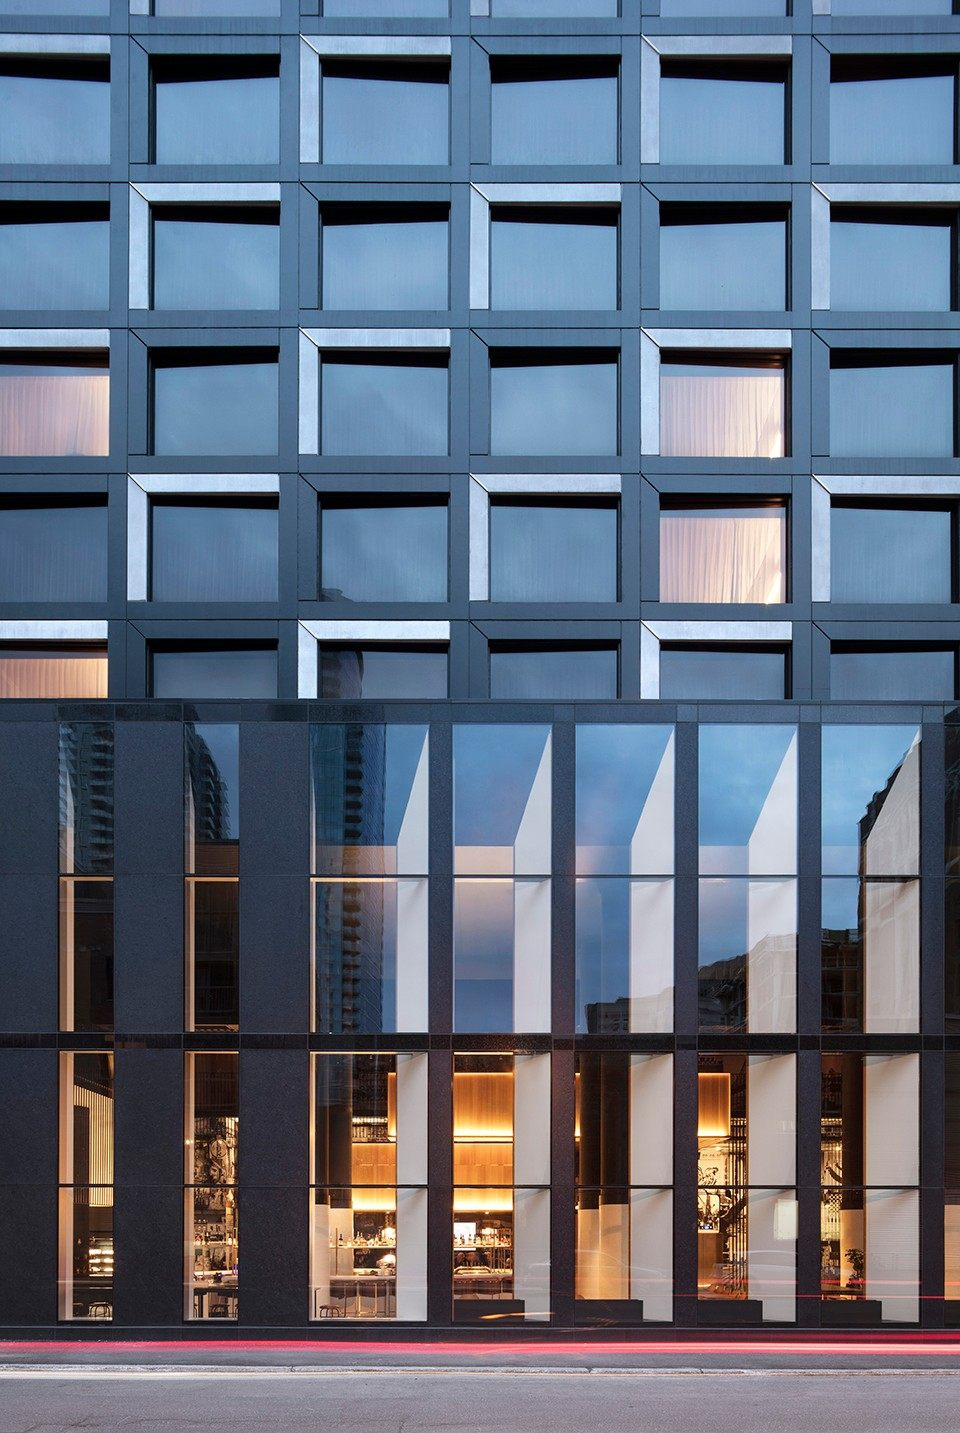 020-hotel-monville-by-acdf-architecture.jpg